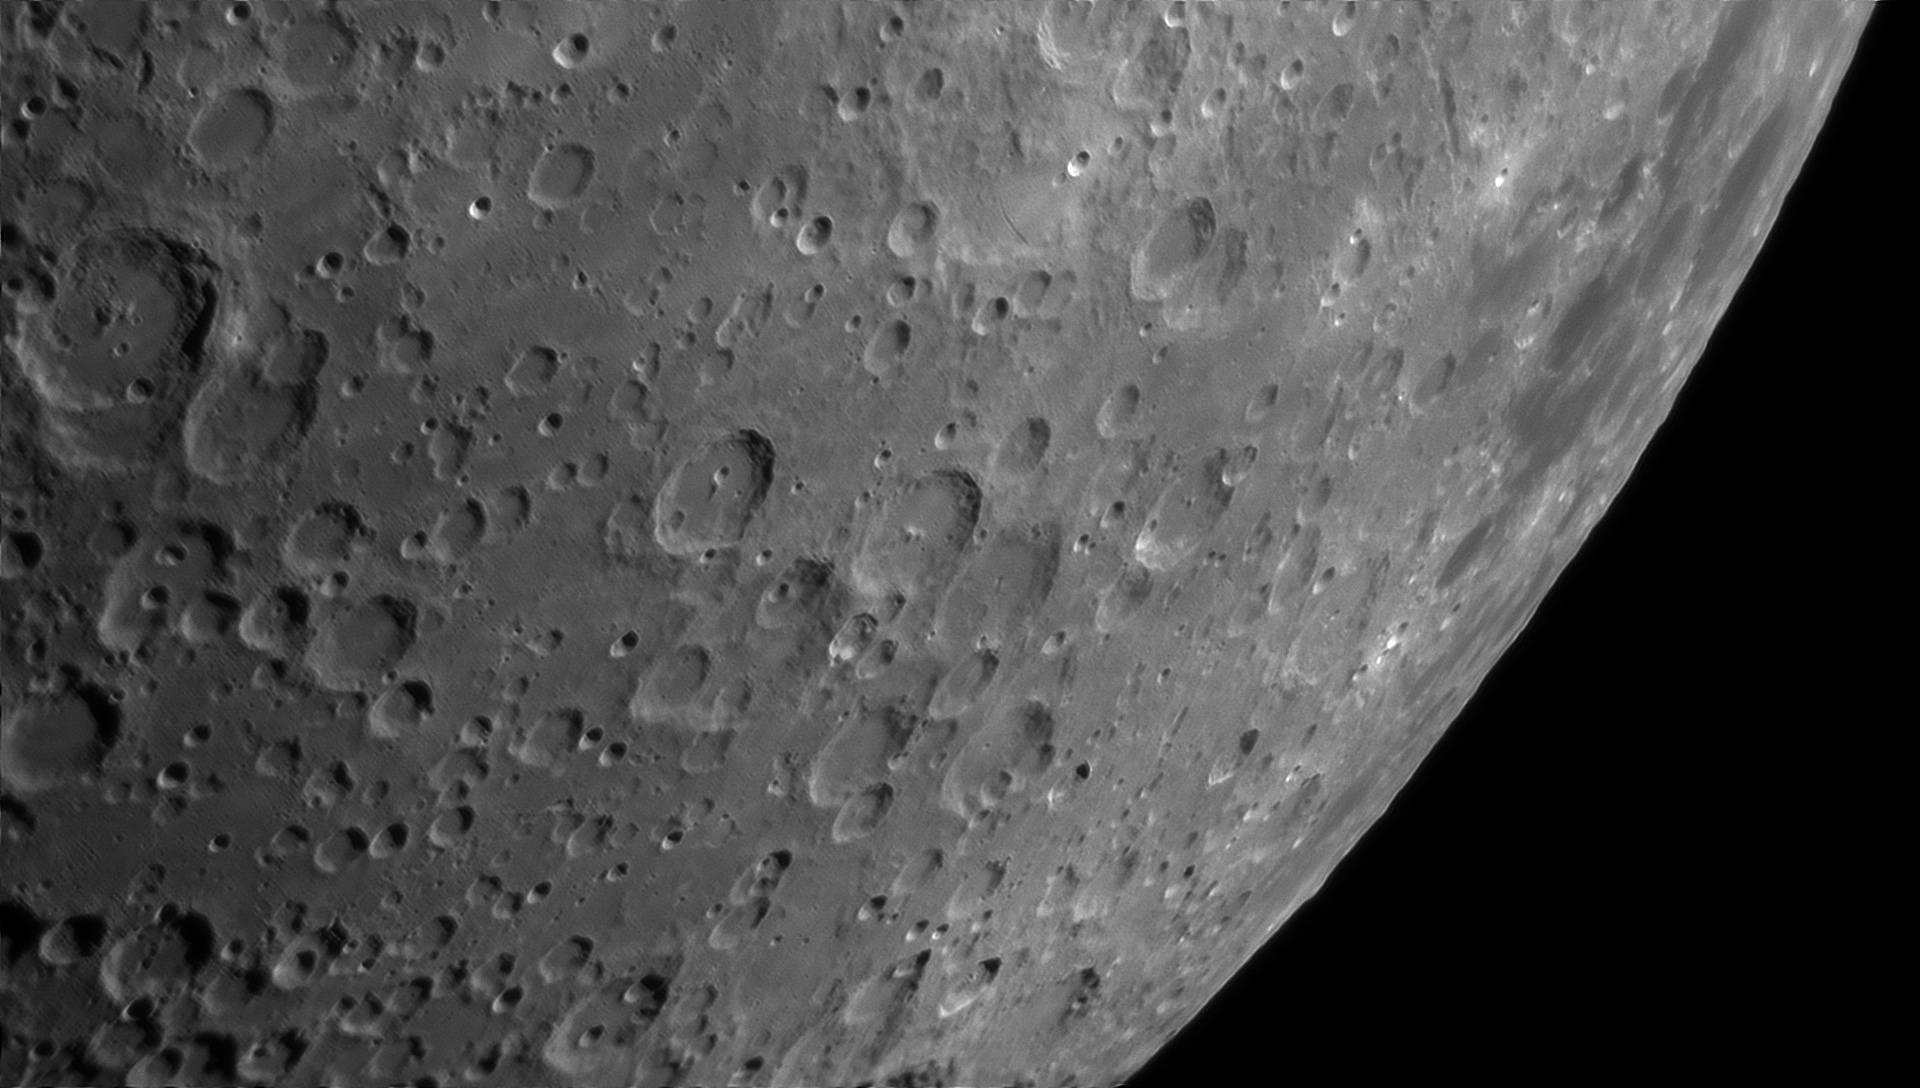 5d0185cfb688f_Moon_230330_100619_ZWOASI290MM_Rouge_23A_AS_P35_lapl4_ap906ast.jpg.393eb93449f4360668705203797c8973.jpg